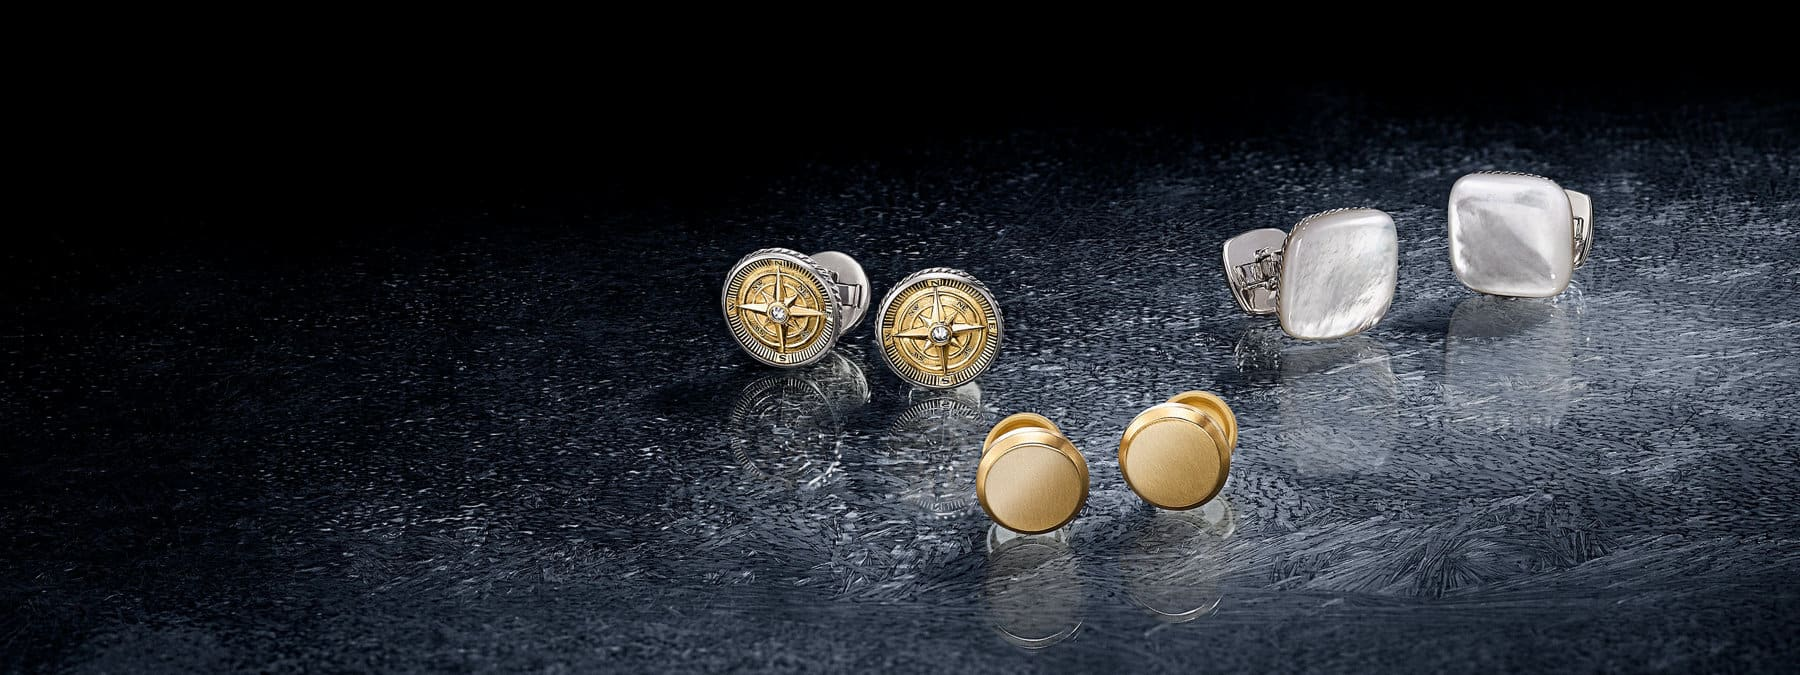 A color photograph shows three pairs of David Yurman men's cufflinks arranged in a horizontal group on top of a crystalline, icy surface with reflections of the jewelry. From left are Maritime compass cufflinks in sterling silver with 18K gold and white diamonds and Streamline cufflinks in 18K gold or sterling silver with mother-of-pearl.